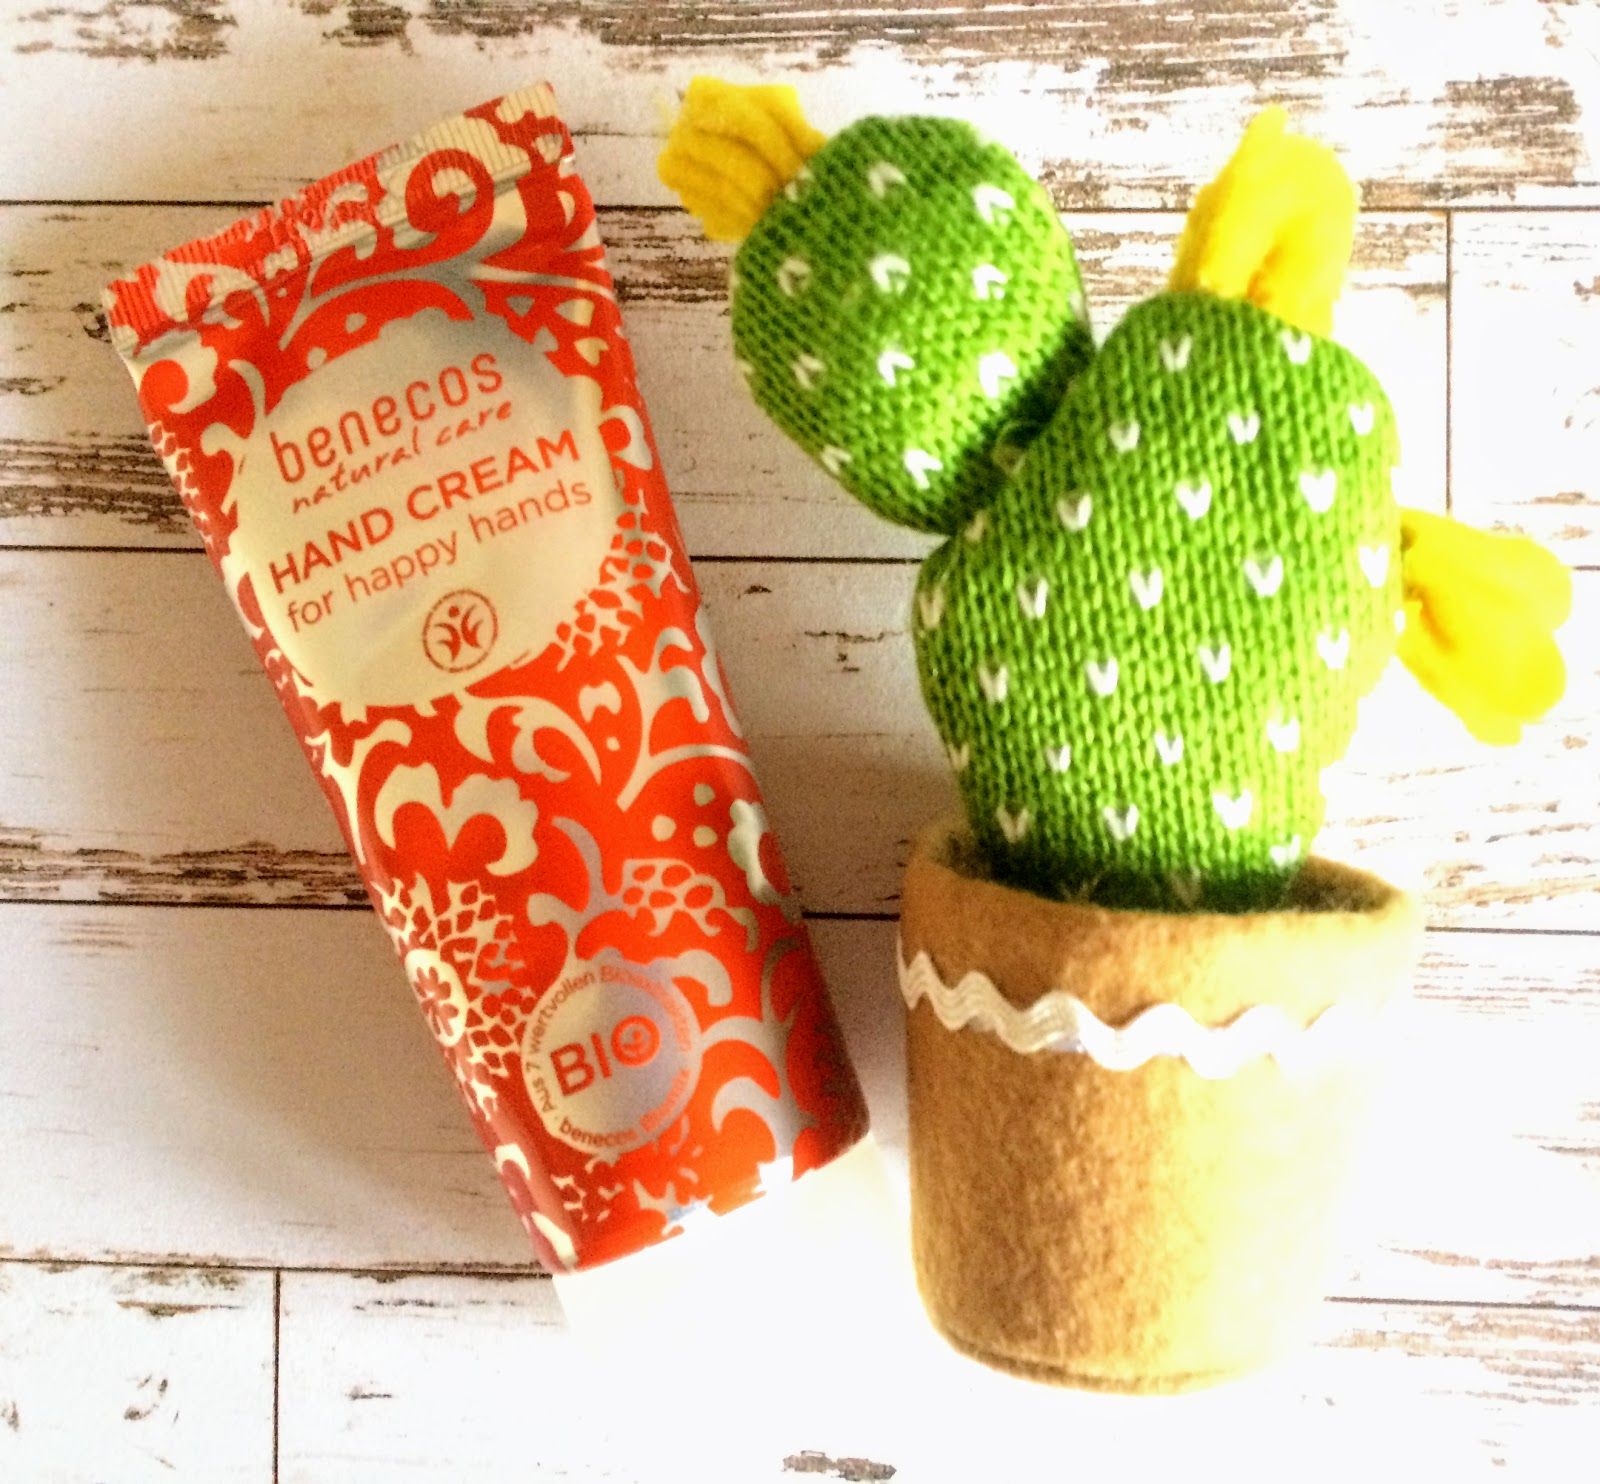 benecos hand cream and a knitted cactus